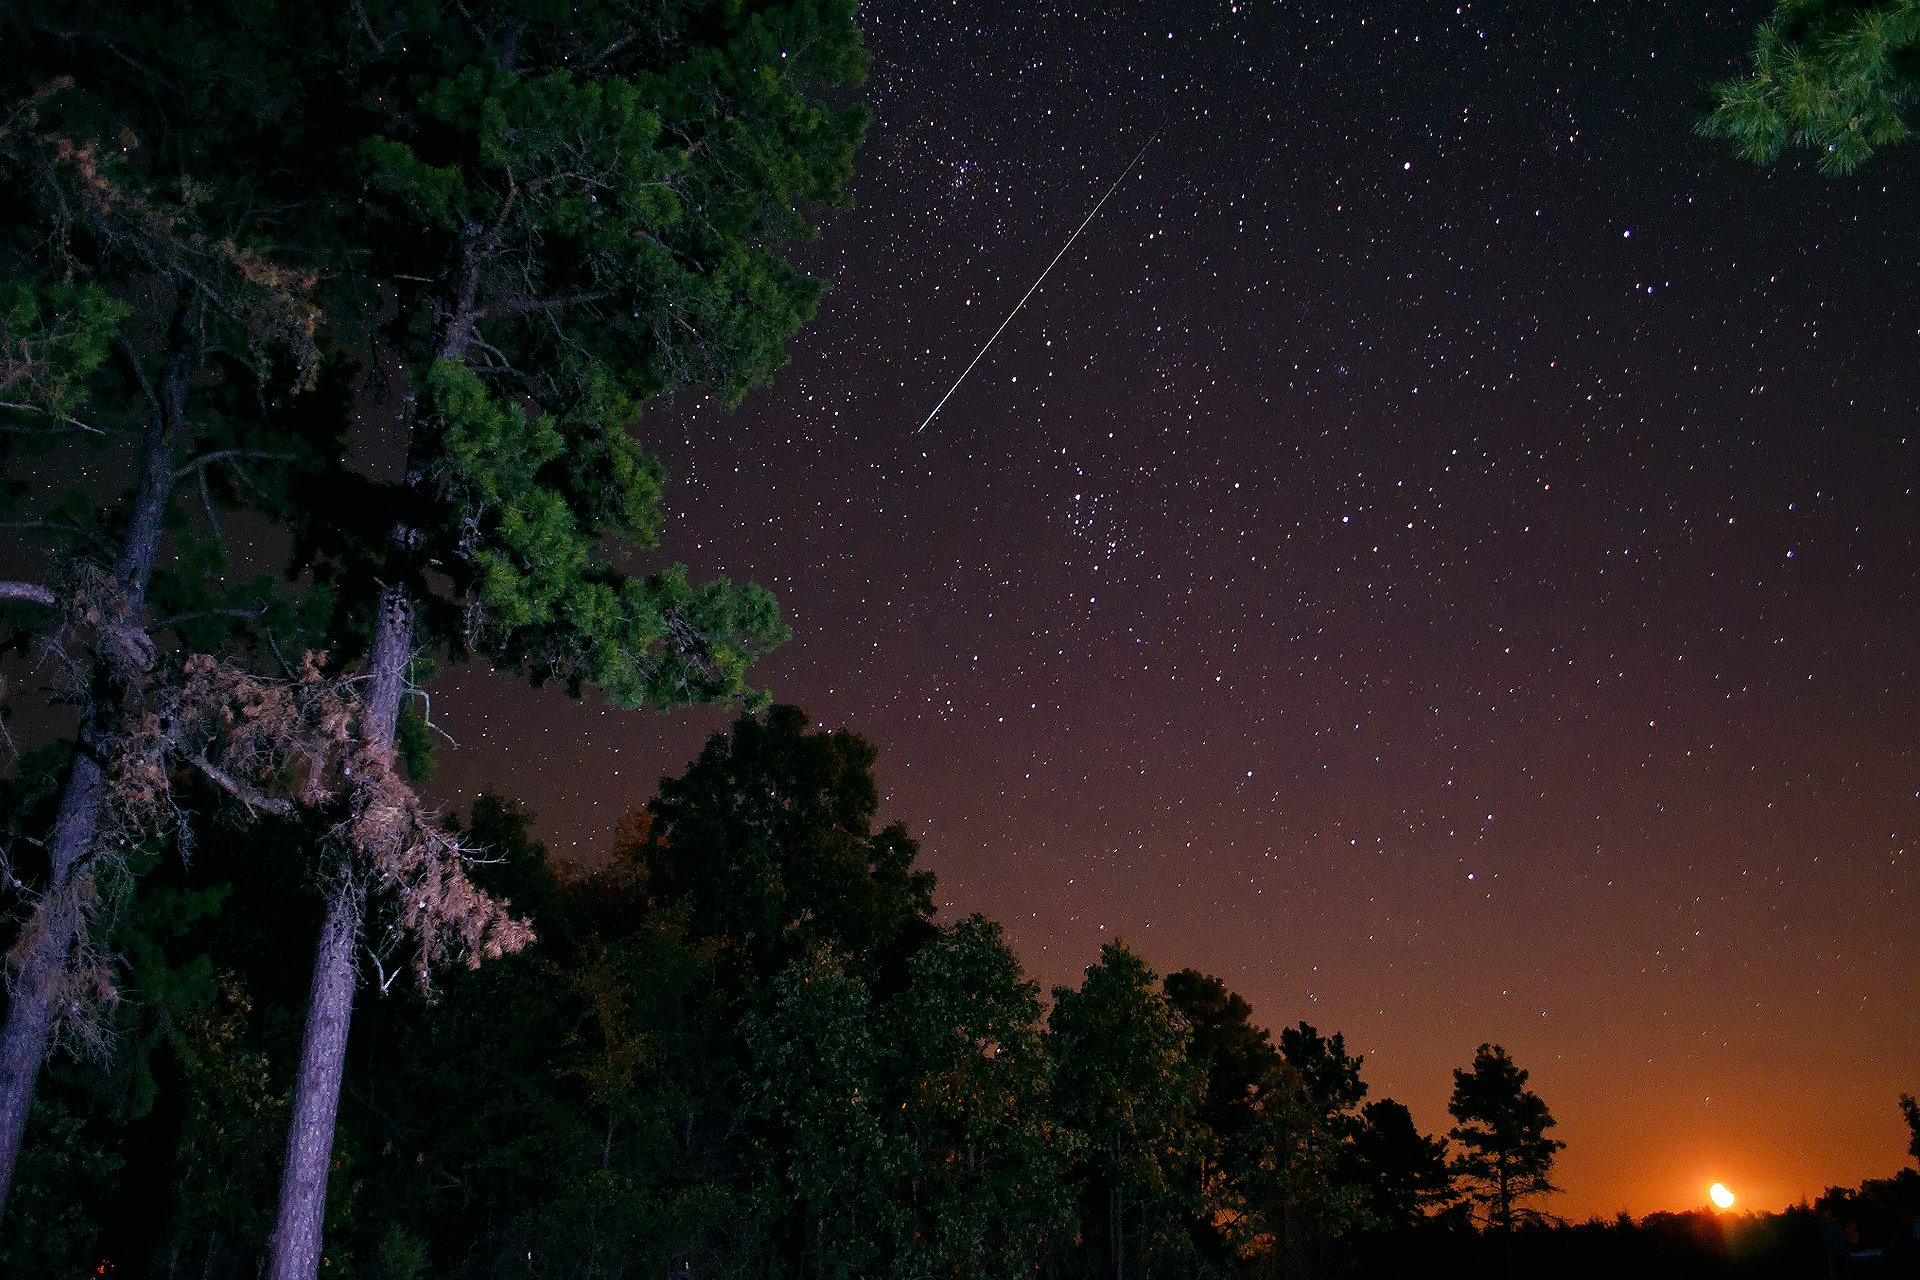 night-sky-stars-forest-pine-trees-the-moon